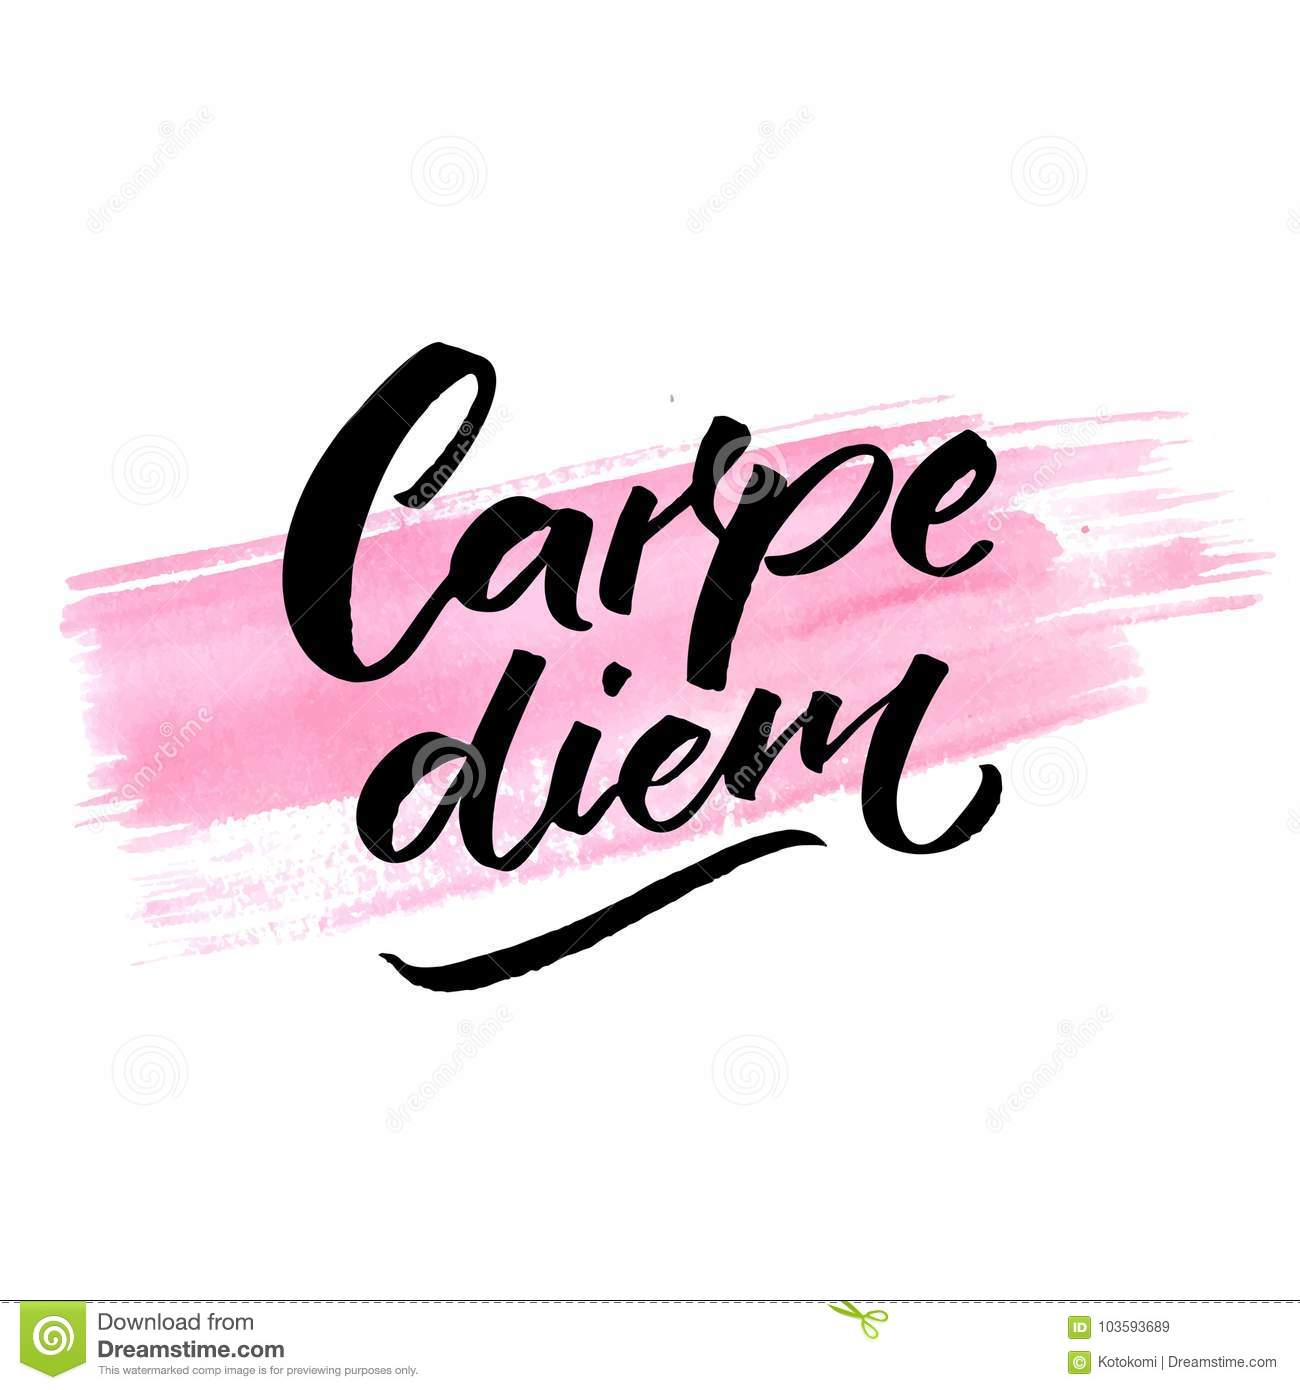 Carpe diem definition francais